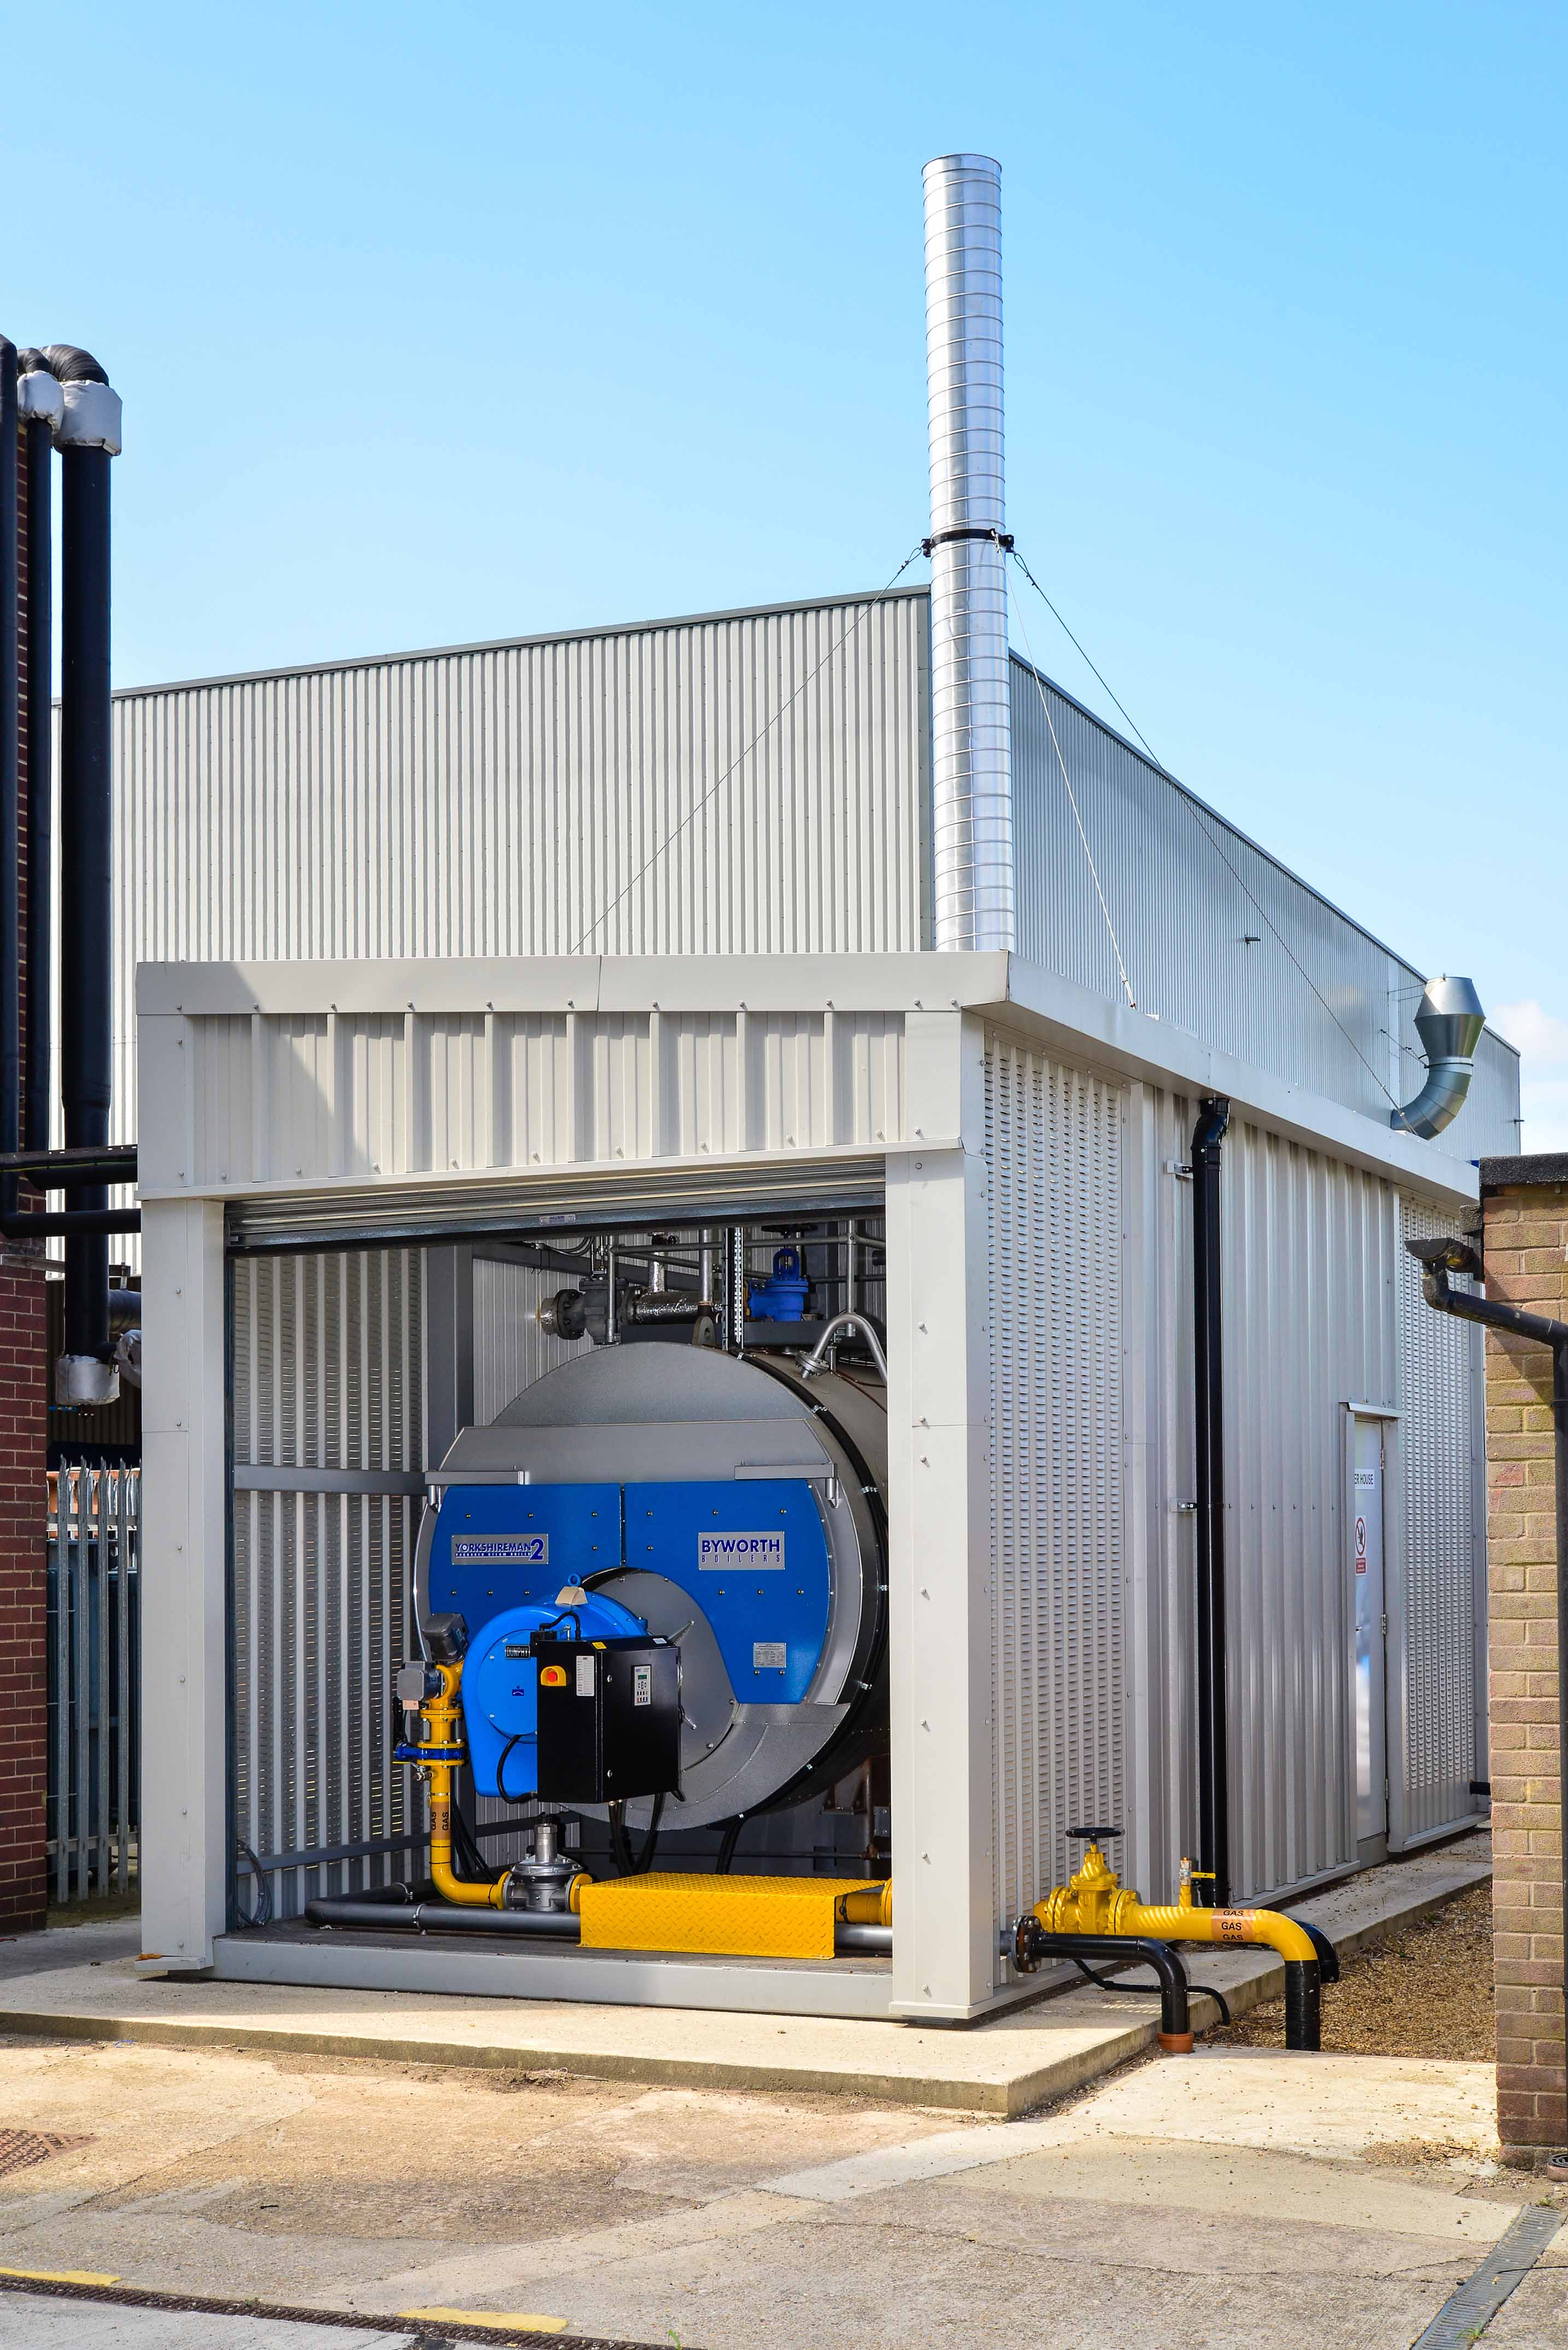 Long Term Boiler Hire Pays Dividends For Feed Mill - Byworth